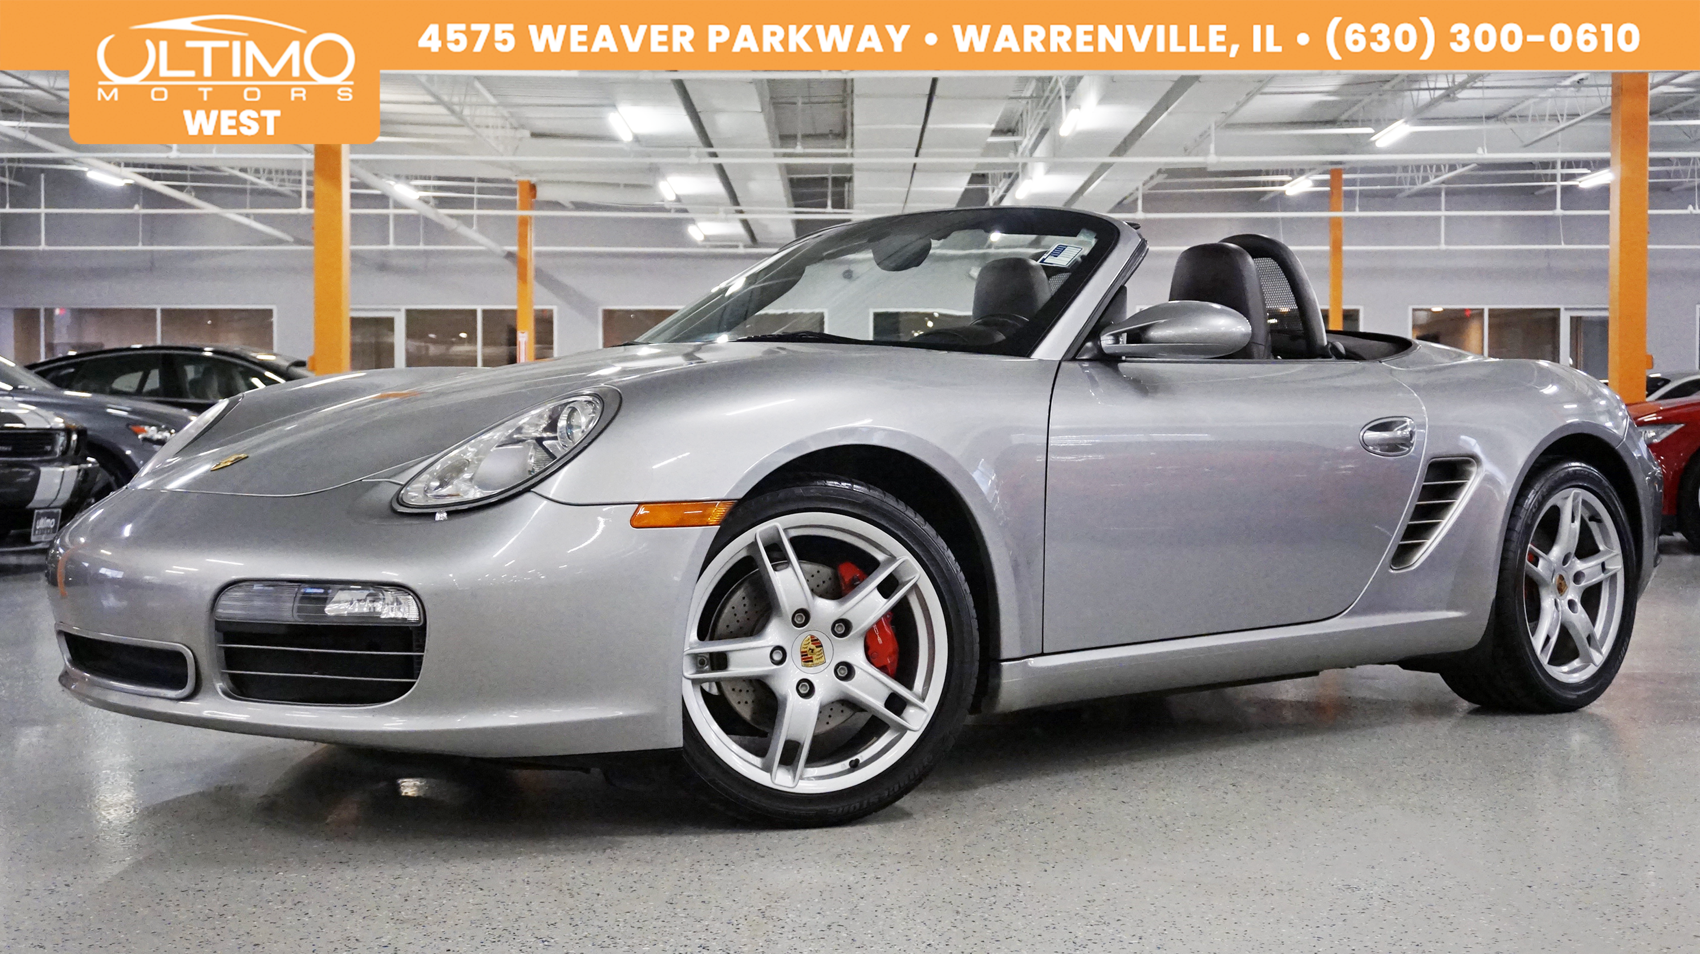 Pre-Owned 2006 Porsche Boxster S 6-Speed Manual, Cocoa Top, Heated Seats MSRP $66,455.00